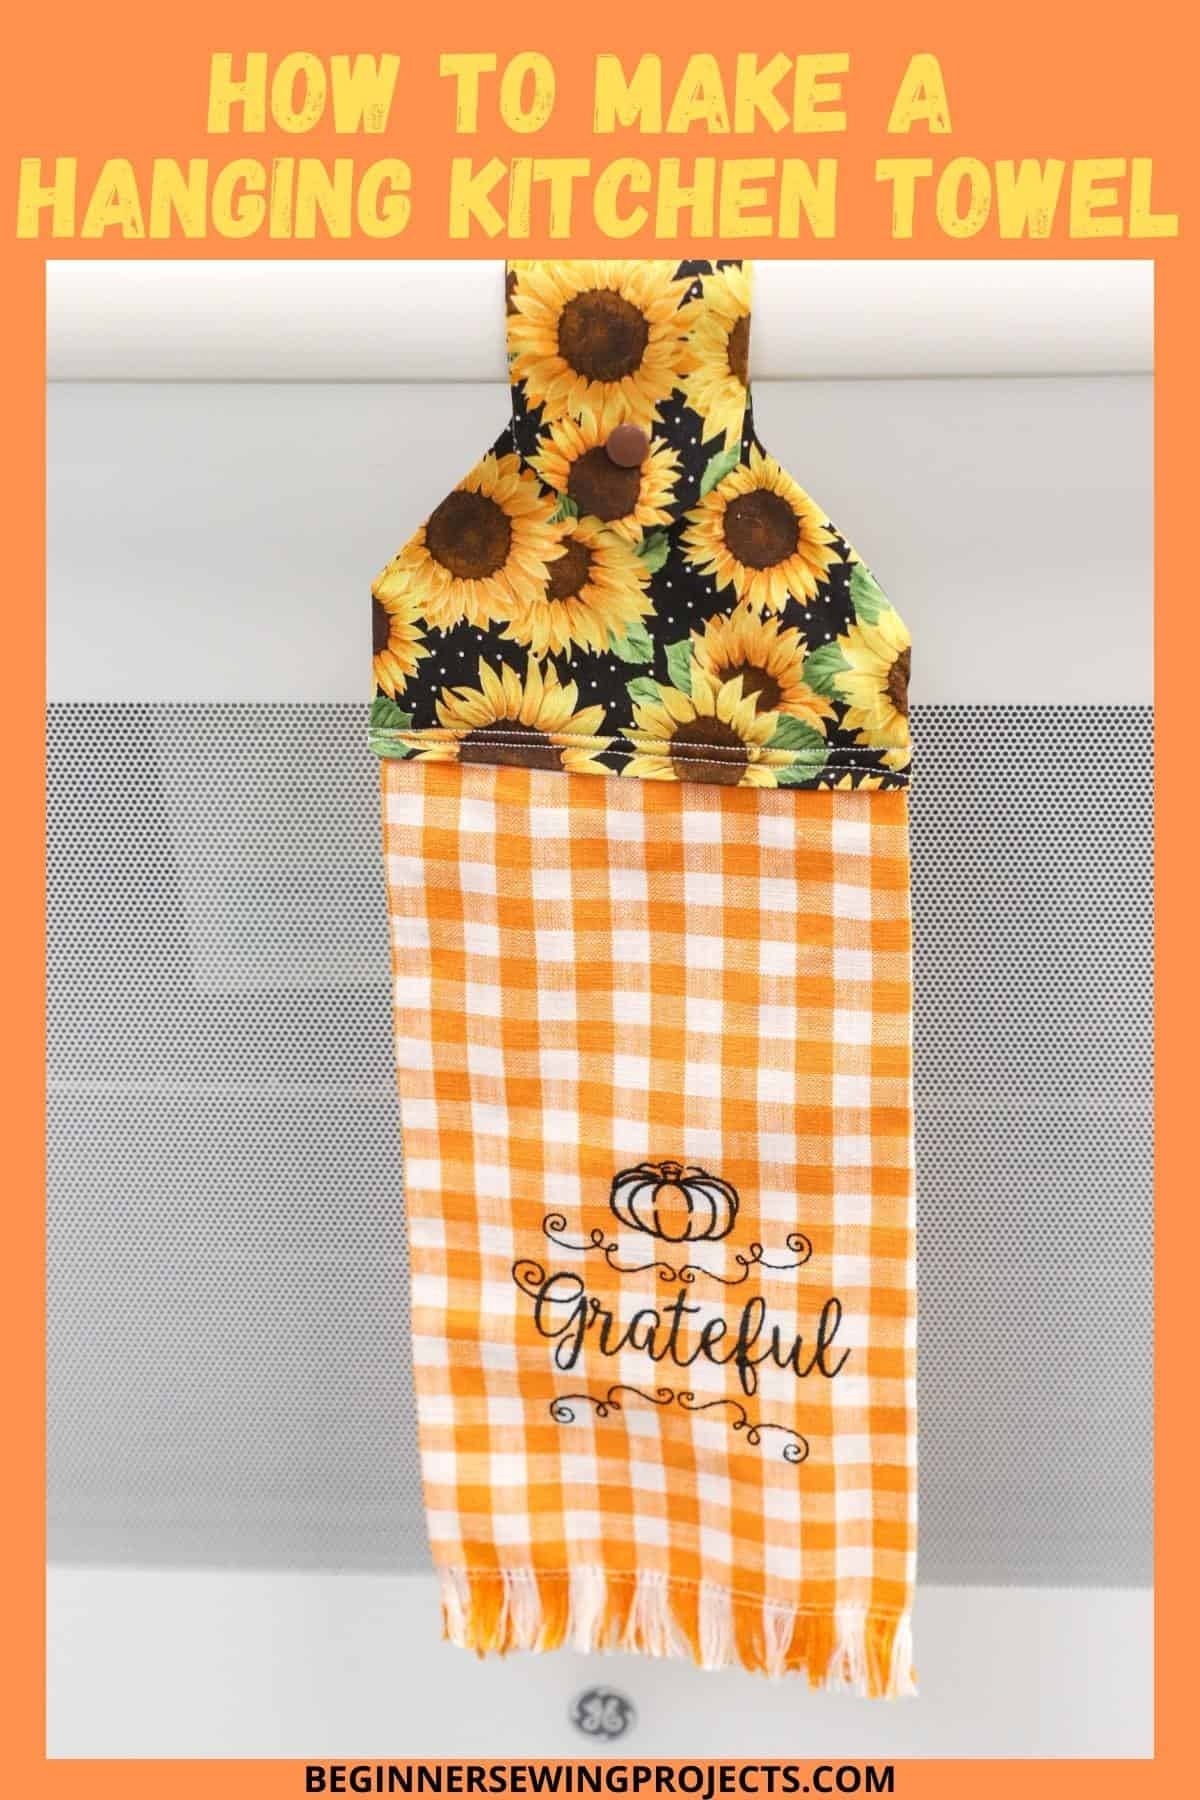 How To Make A Hanging Kitchen Towel